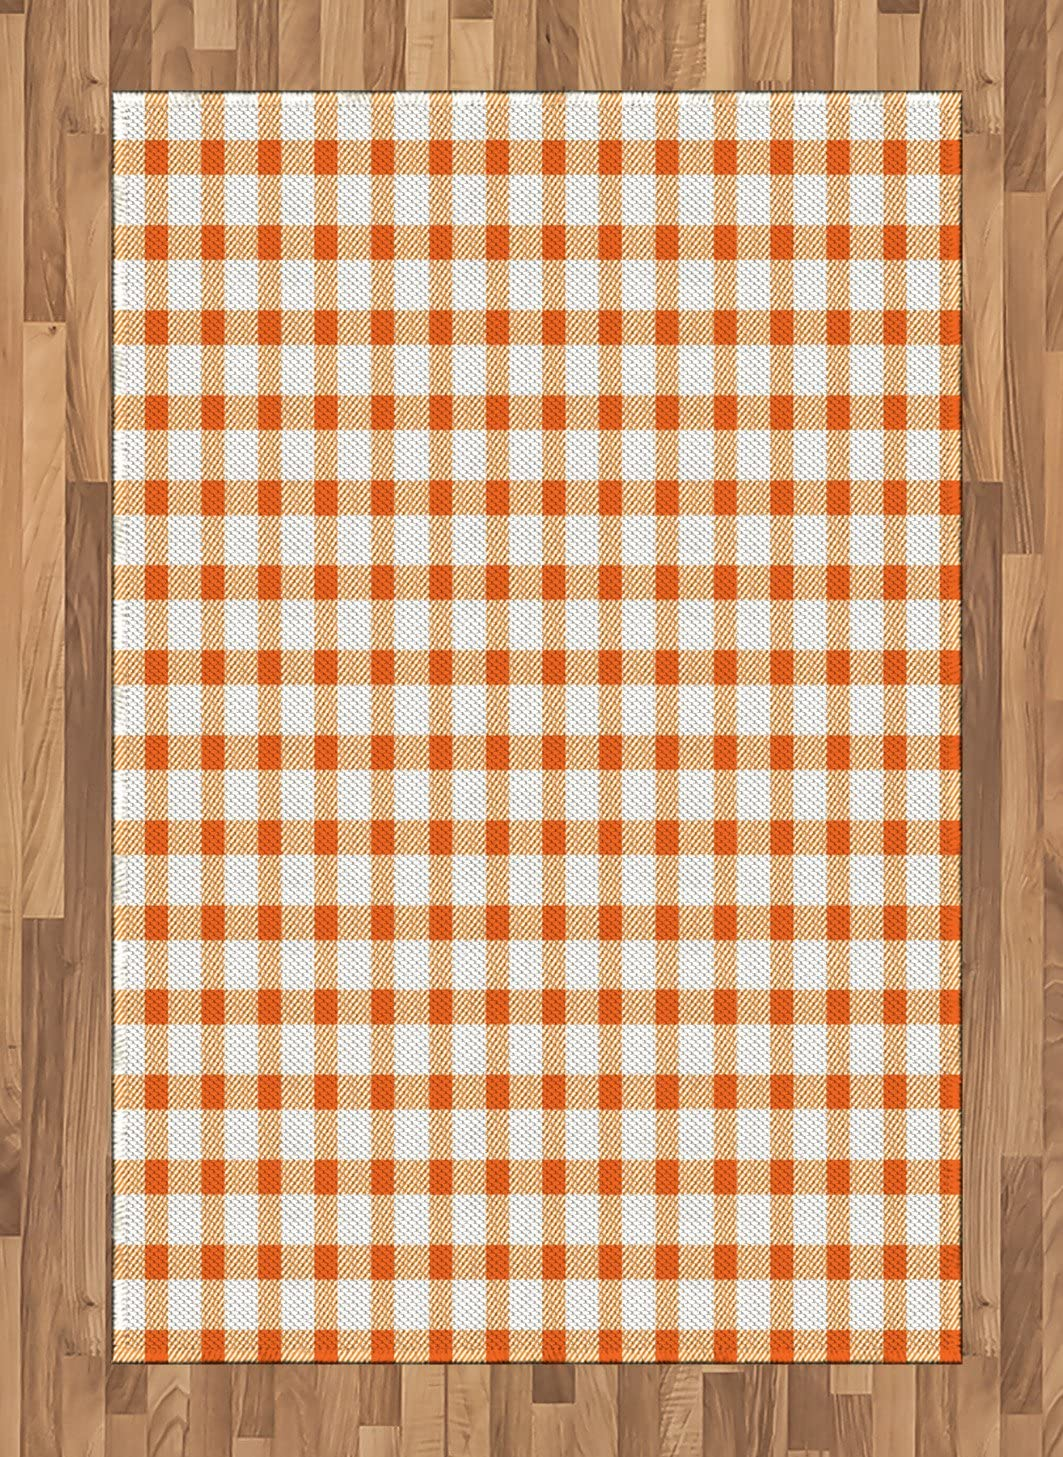 Ambesonne Orange and White Area Rug, Retro Gingham Style Checkered Squares Pattern in Warm Colors Plaid, Flat Woven Accent Rug for Living Room Bedroom Dining Room, 4' X 5.7', Orange and White